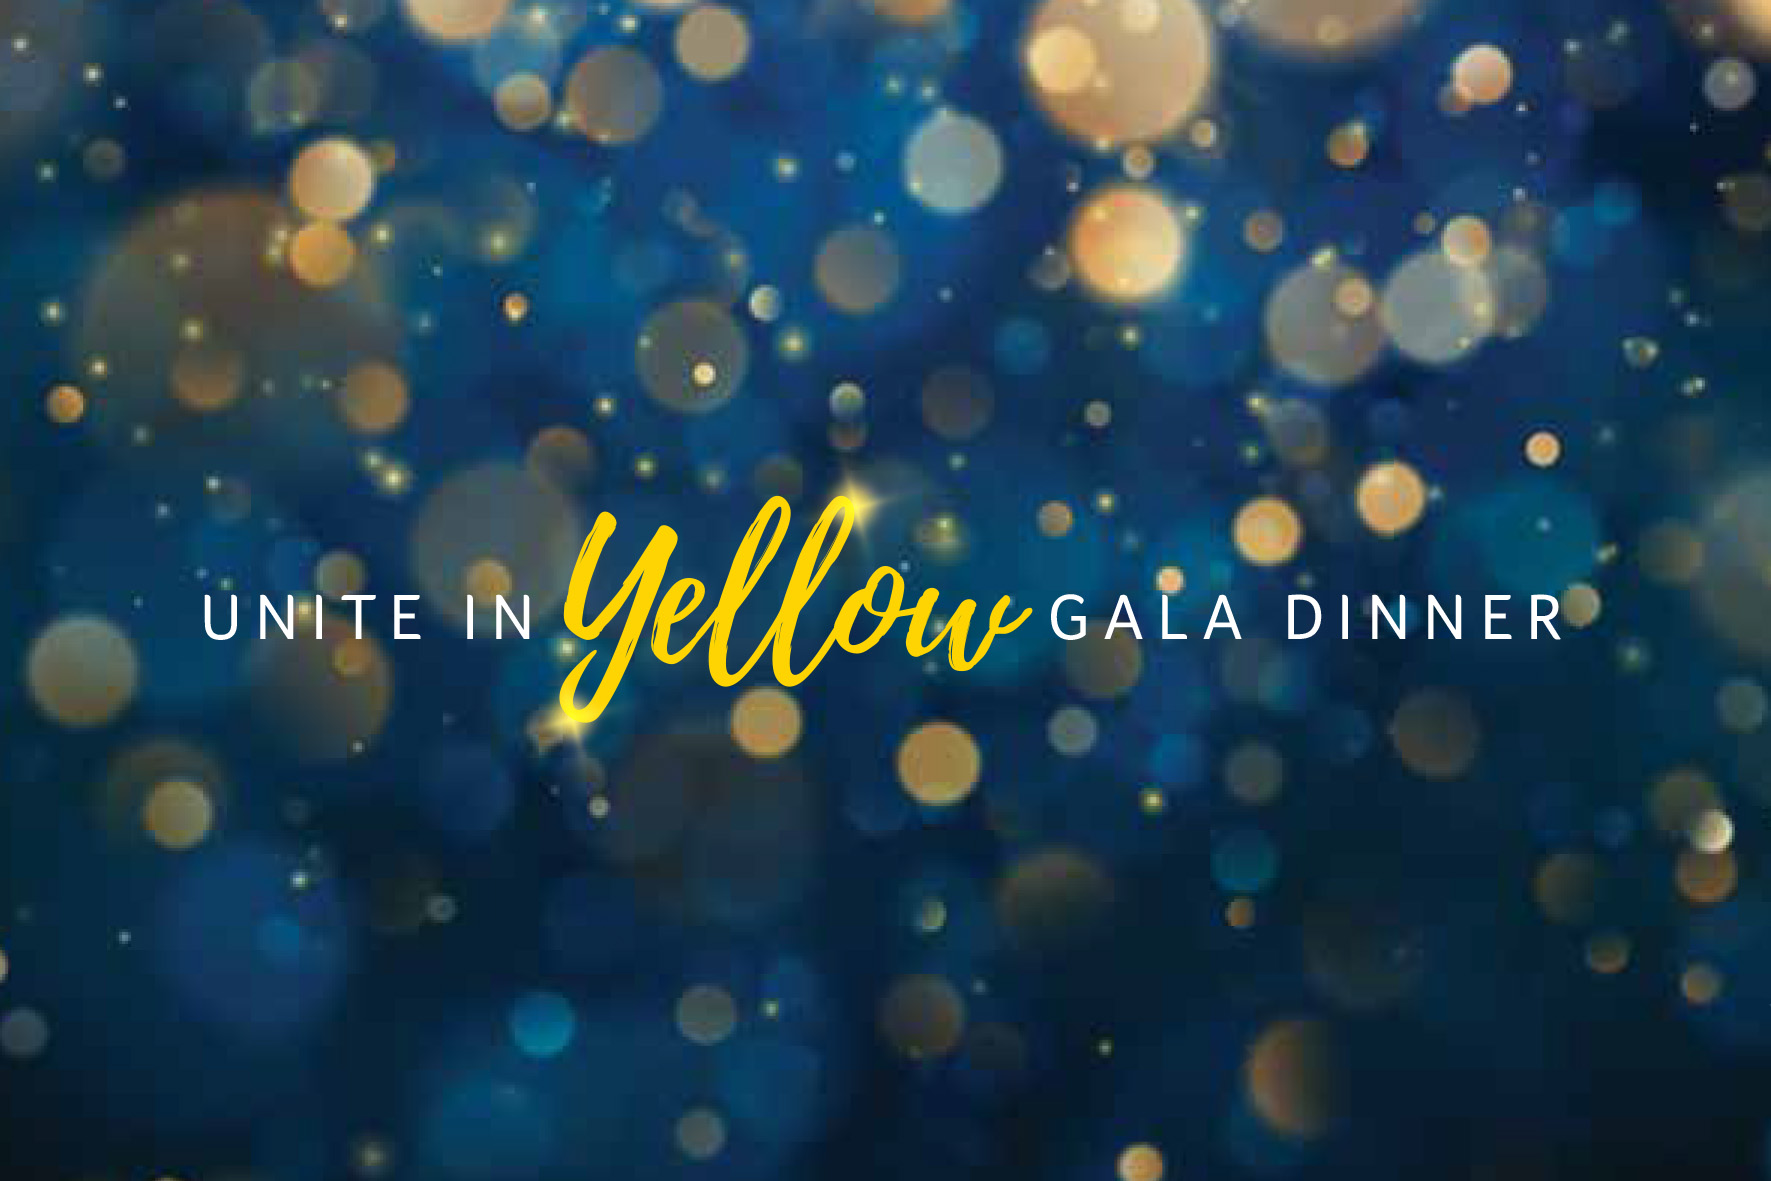 Unite In Yellow Gala Dinner